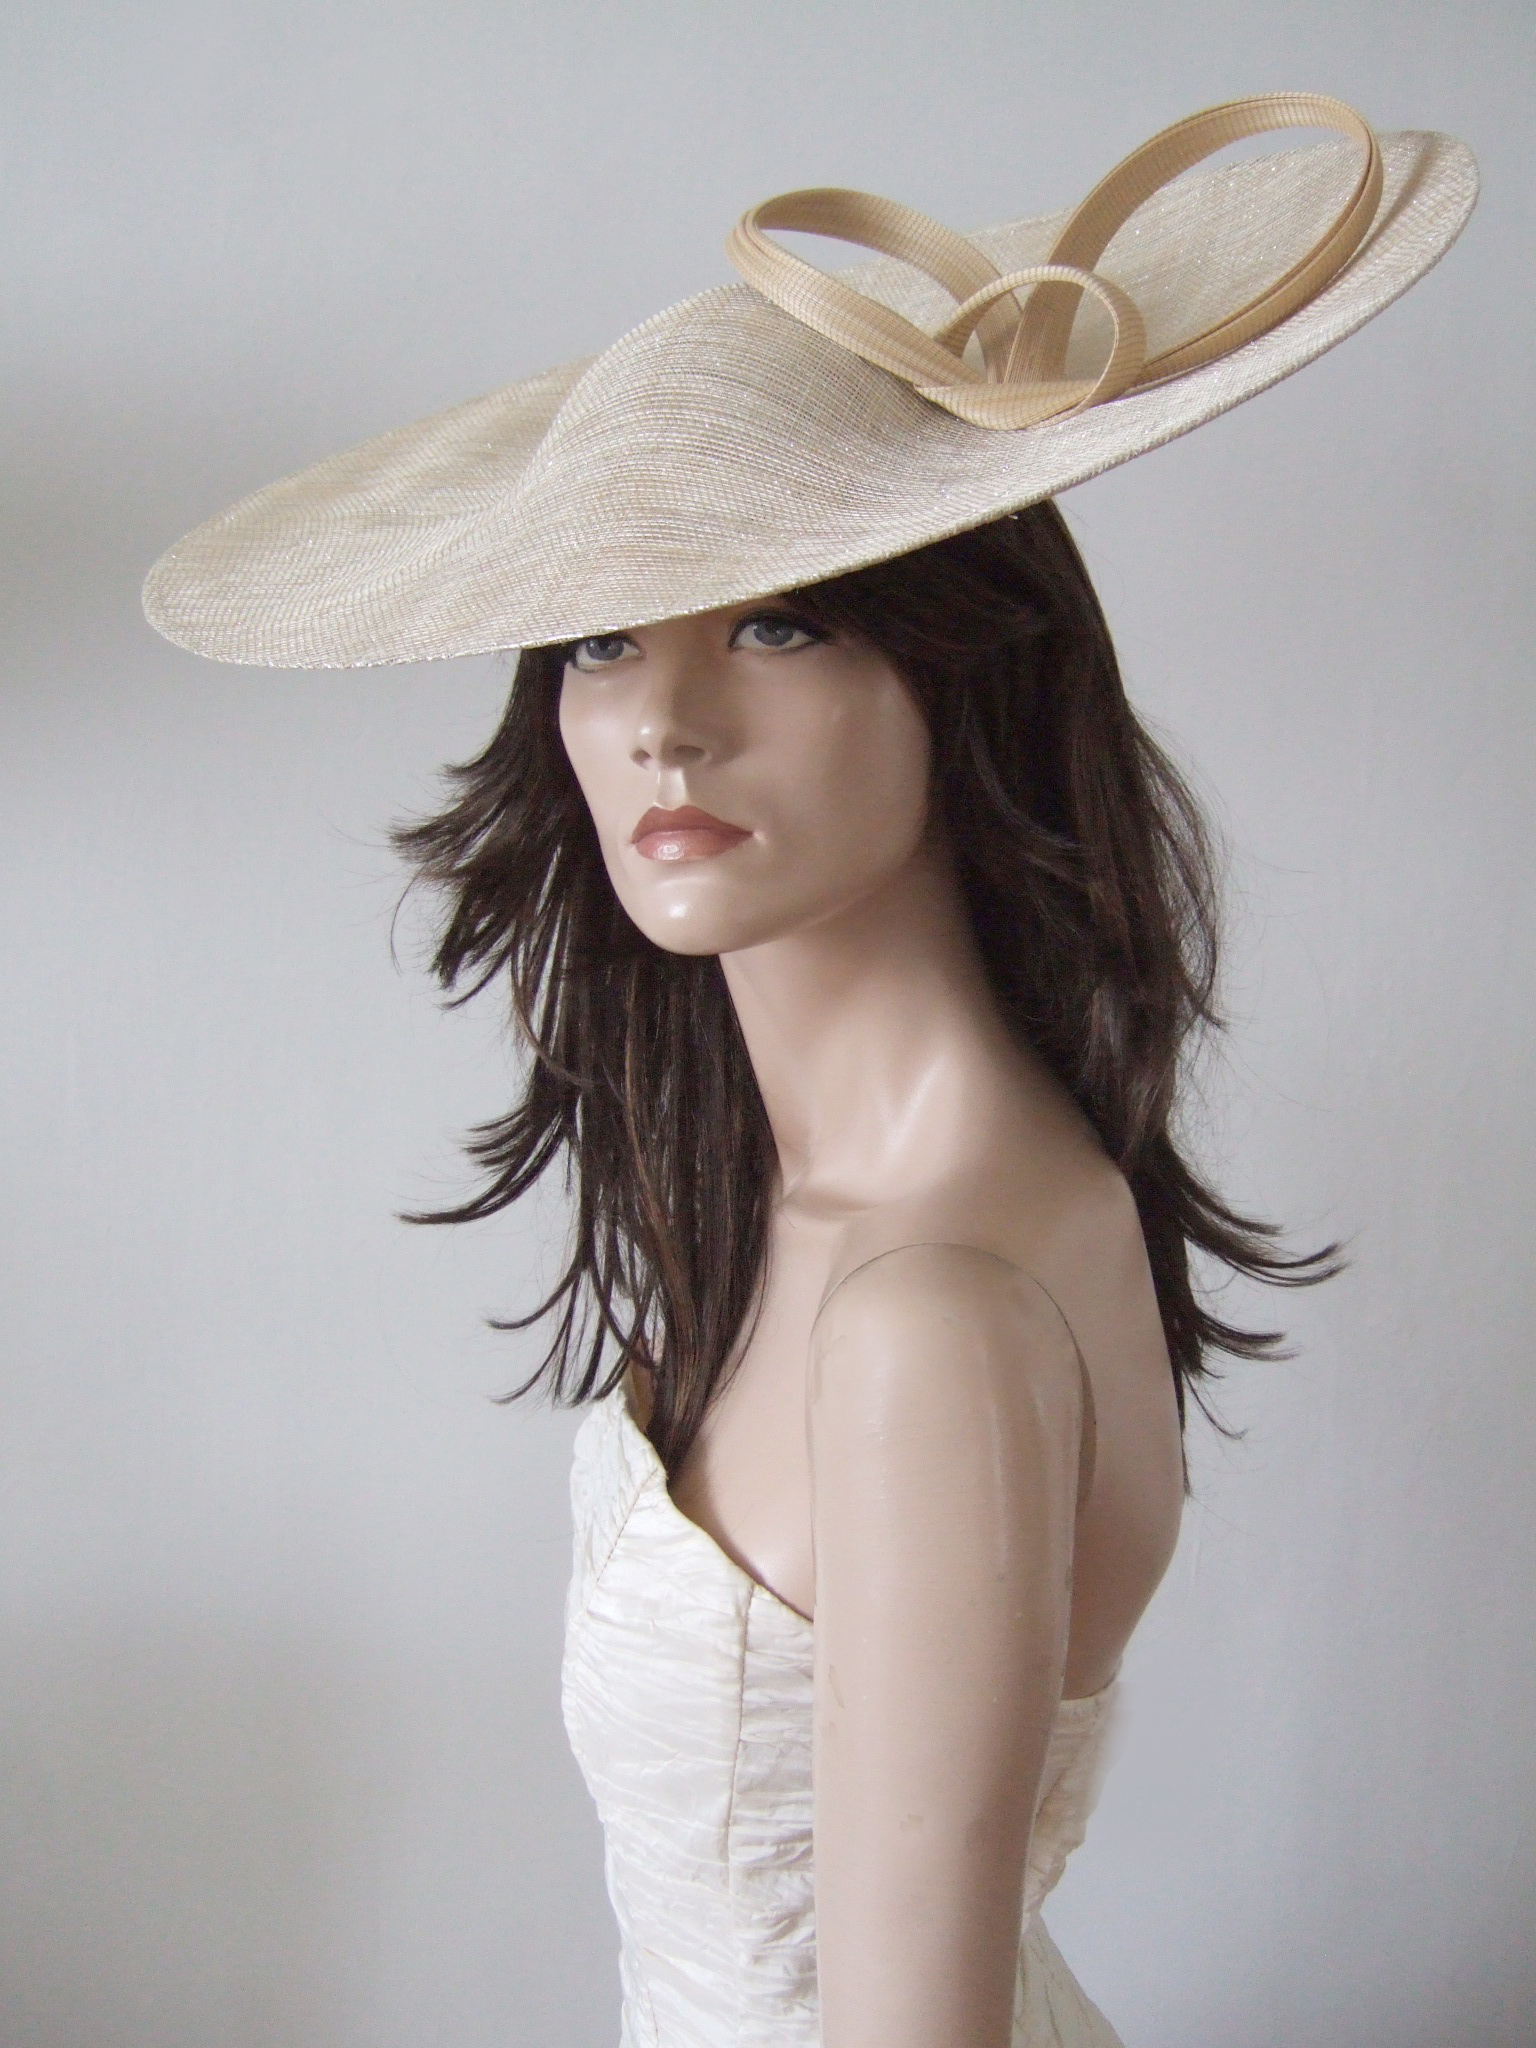 Wedding Guest Hats for Hire near London. Royal Ascot Hat Rental 2021. Hire Hats for Wedding Guests UK. Best Royal Ascot Hats 2021. Philip Treacy Hats for Hire 2020. Philip Treacy Royal Ascot Hats 2020. Gold Royal Ascot Hats 2021. Hats to wear with a Light Gold dress. Formal Wedding Hats for Hire UK 2020. Amazing Hats for the Races 2021. Gold Mother of the Bride Hats for Hire 2020.